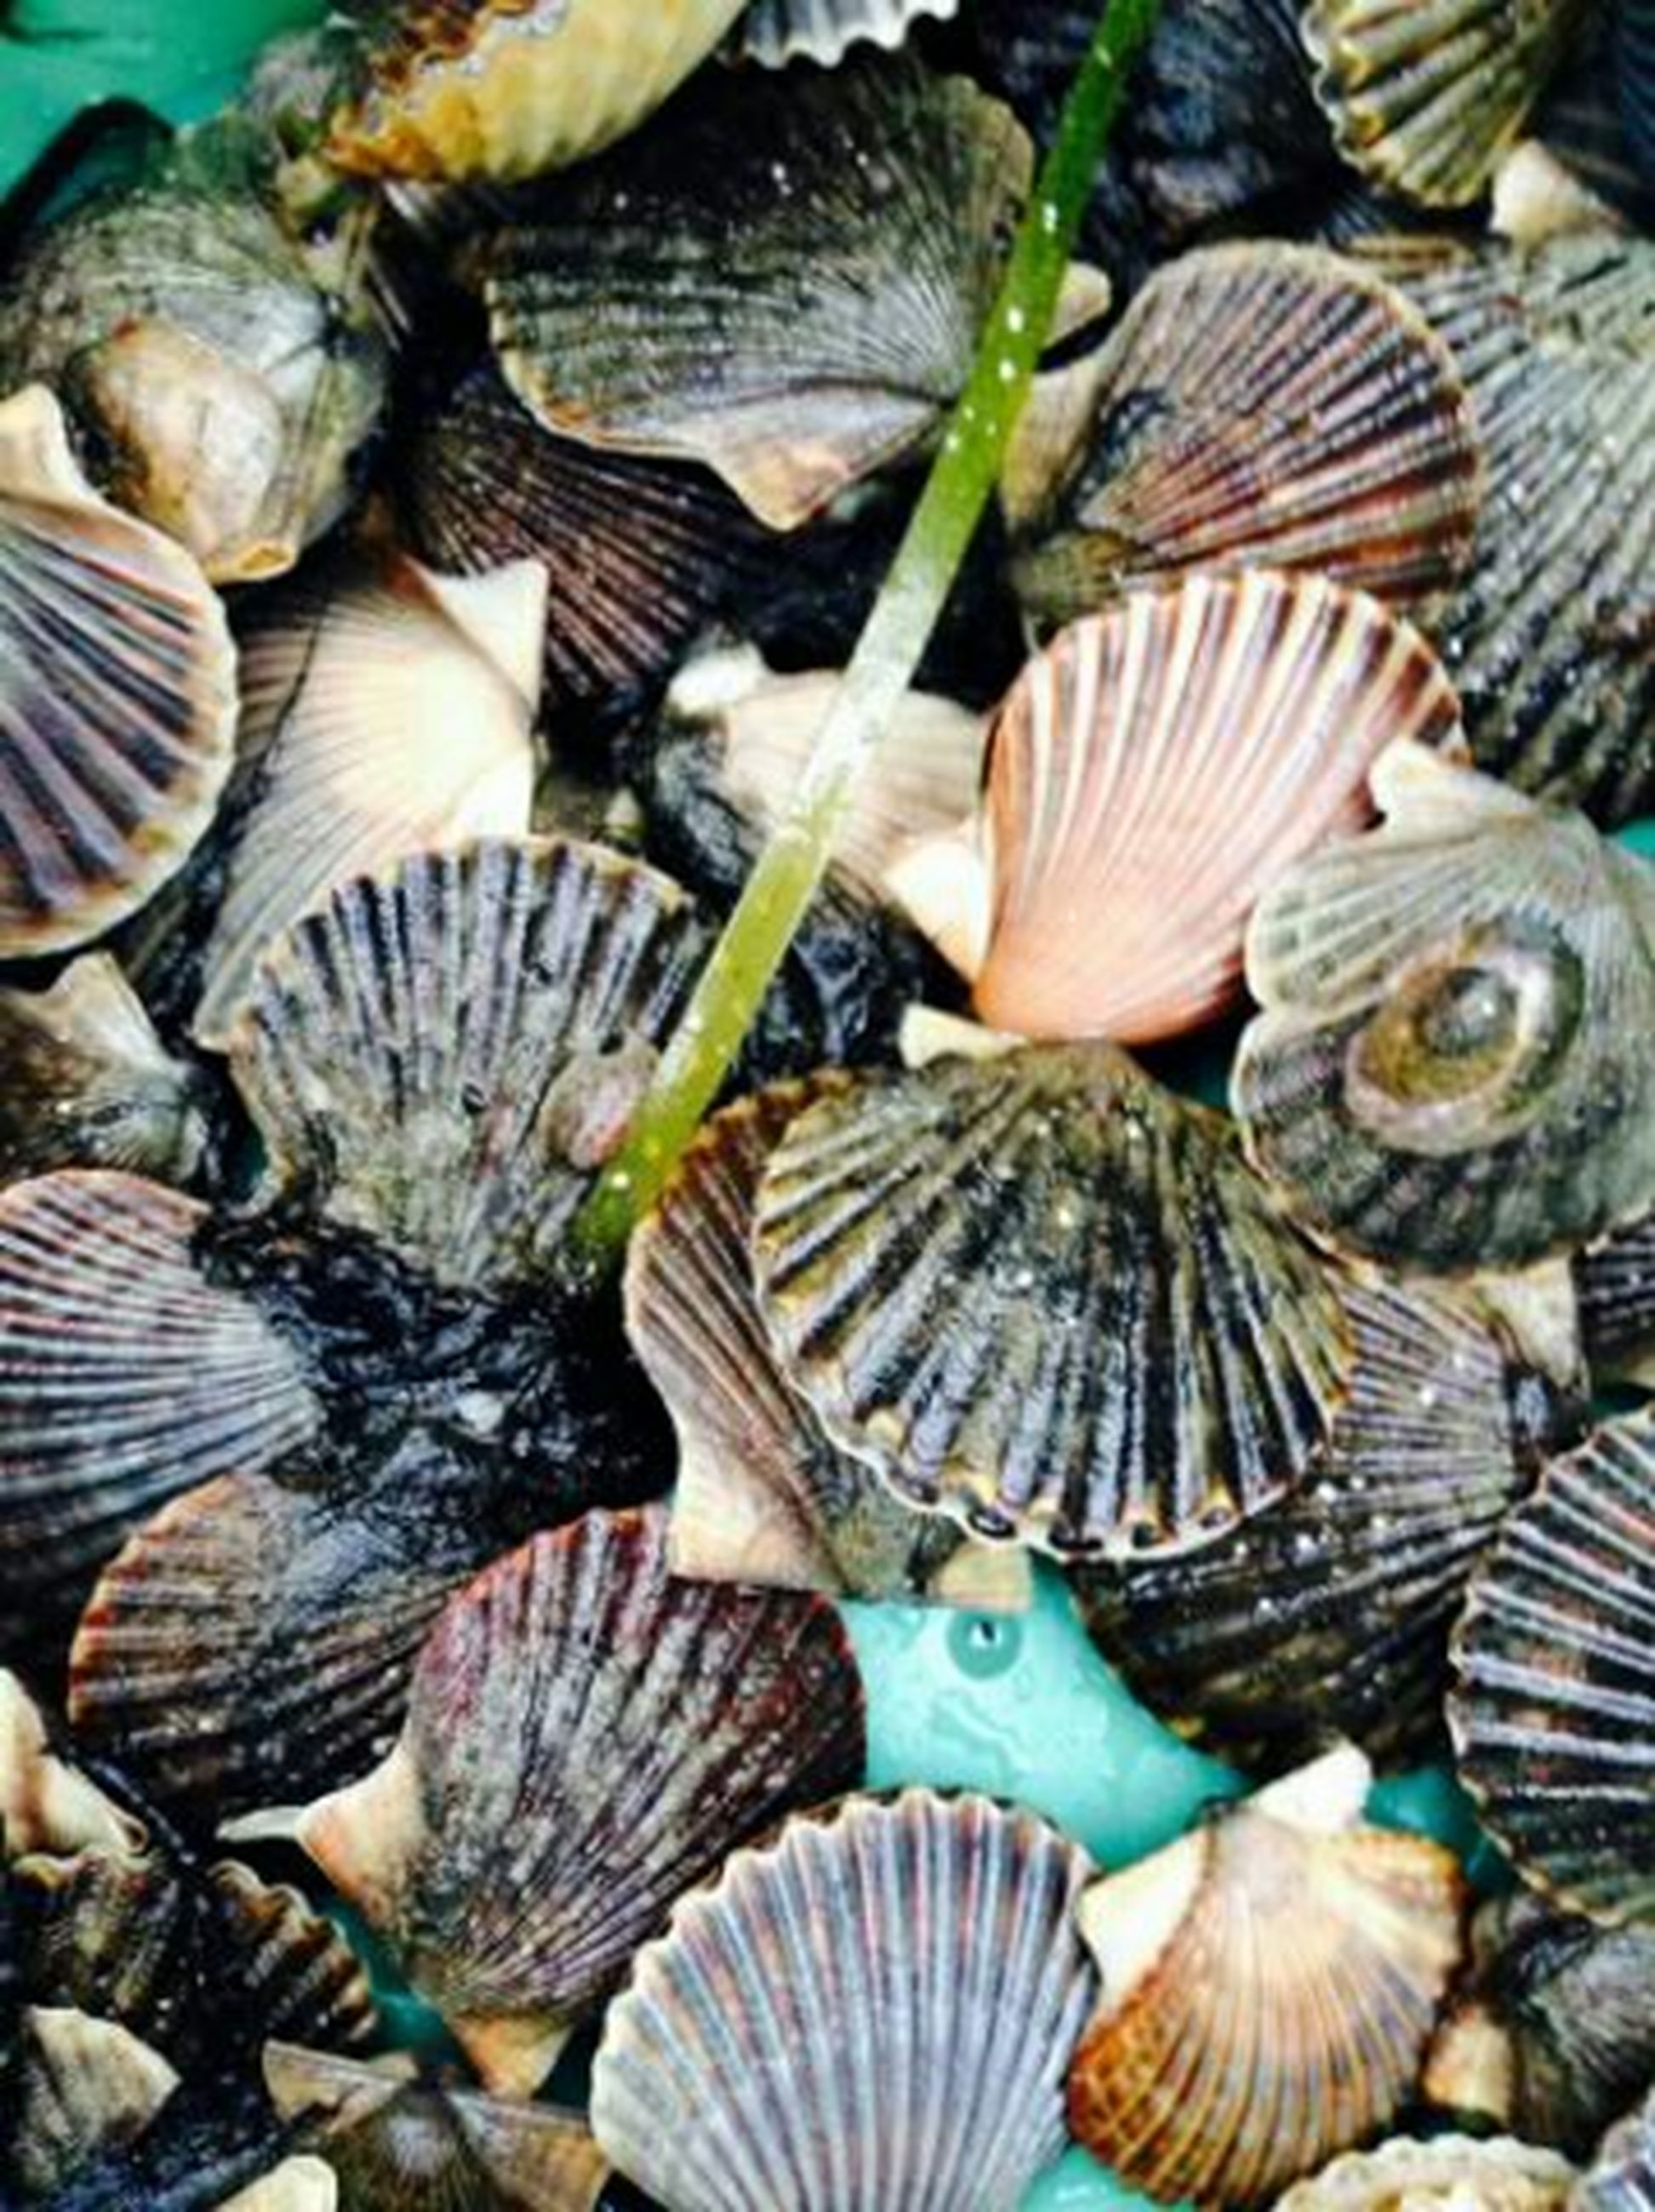 animal themes, for sale, seafood, abundance, full frame, fish, high angle view, variation, market, healthy eating, raw food, wildlife, backgrounds, close-up, animals in the wild, animal shell, food, food and drink, indoors, retail